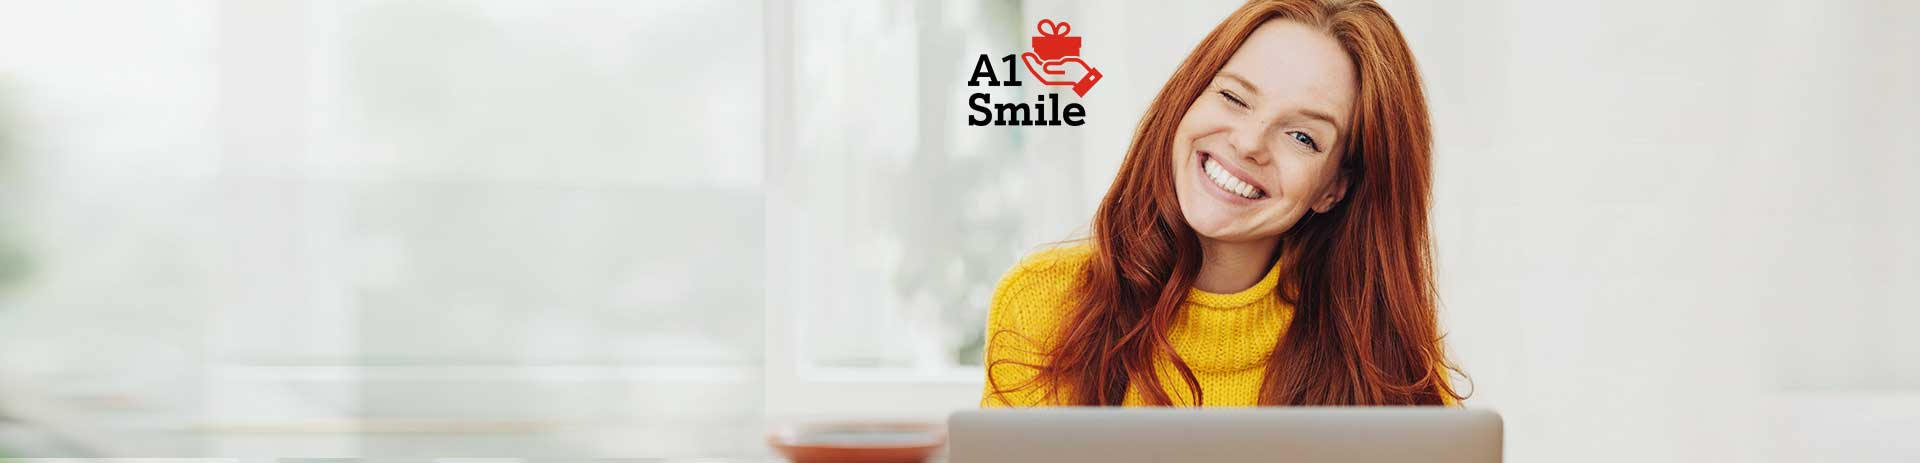 A1 Smile Business